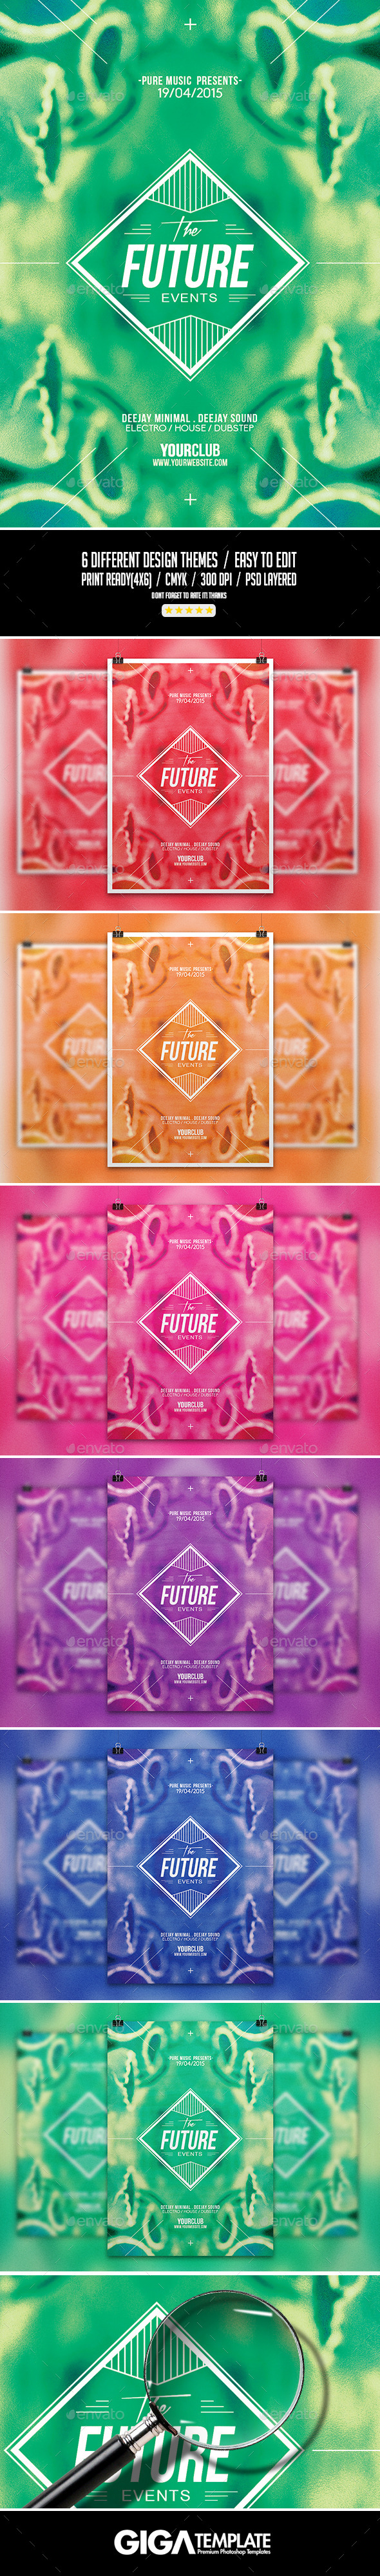 GraphicRiver Strange Future Abstract Minimal Flyer Template 11323389